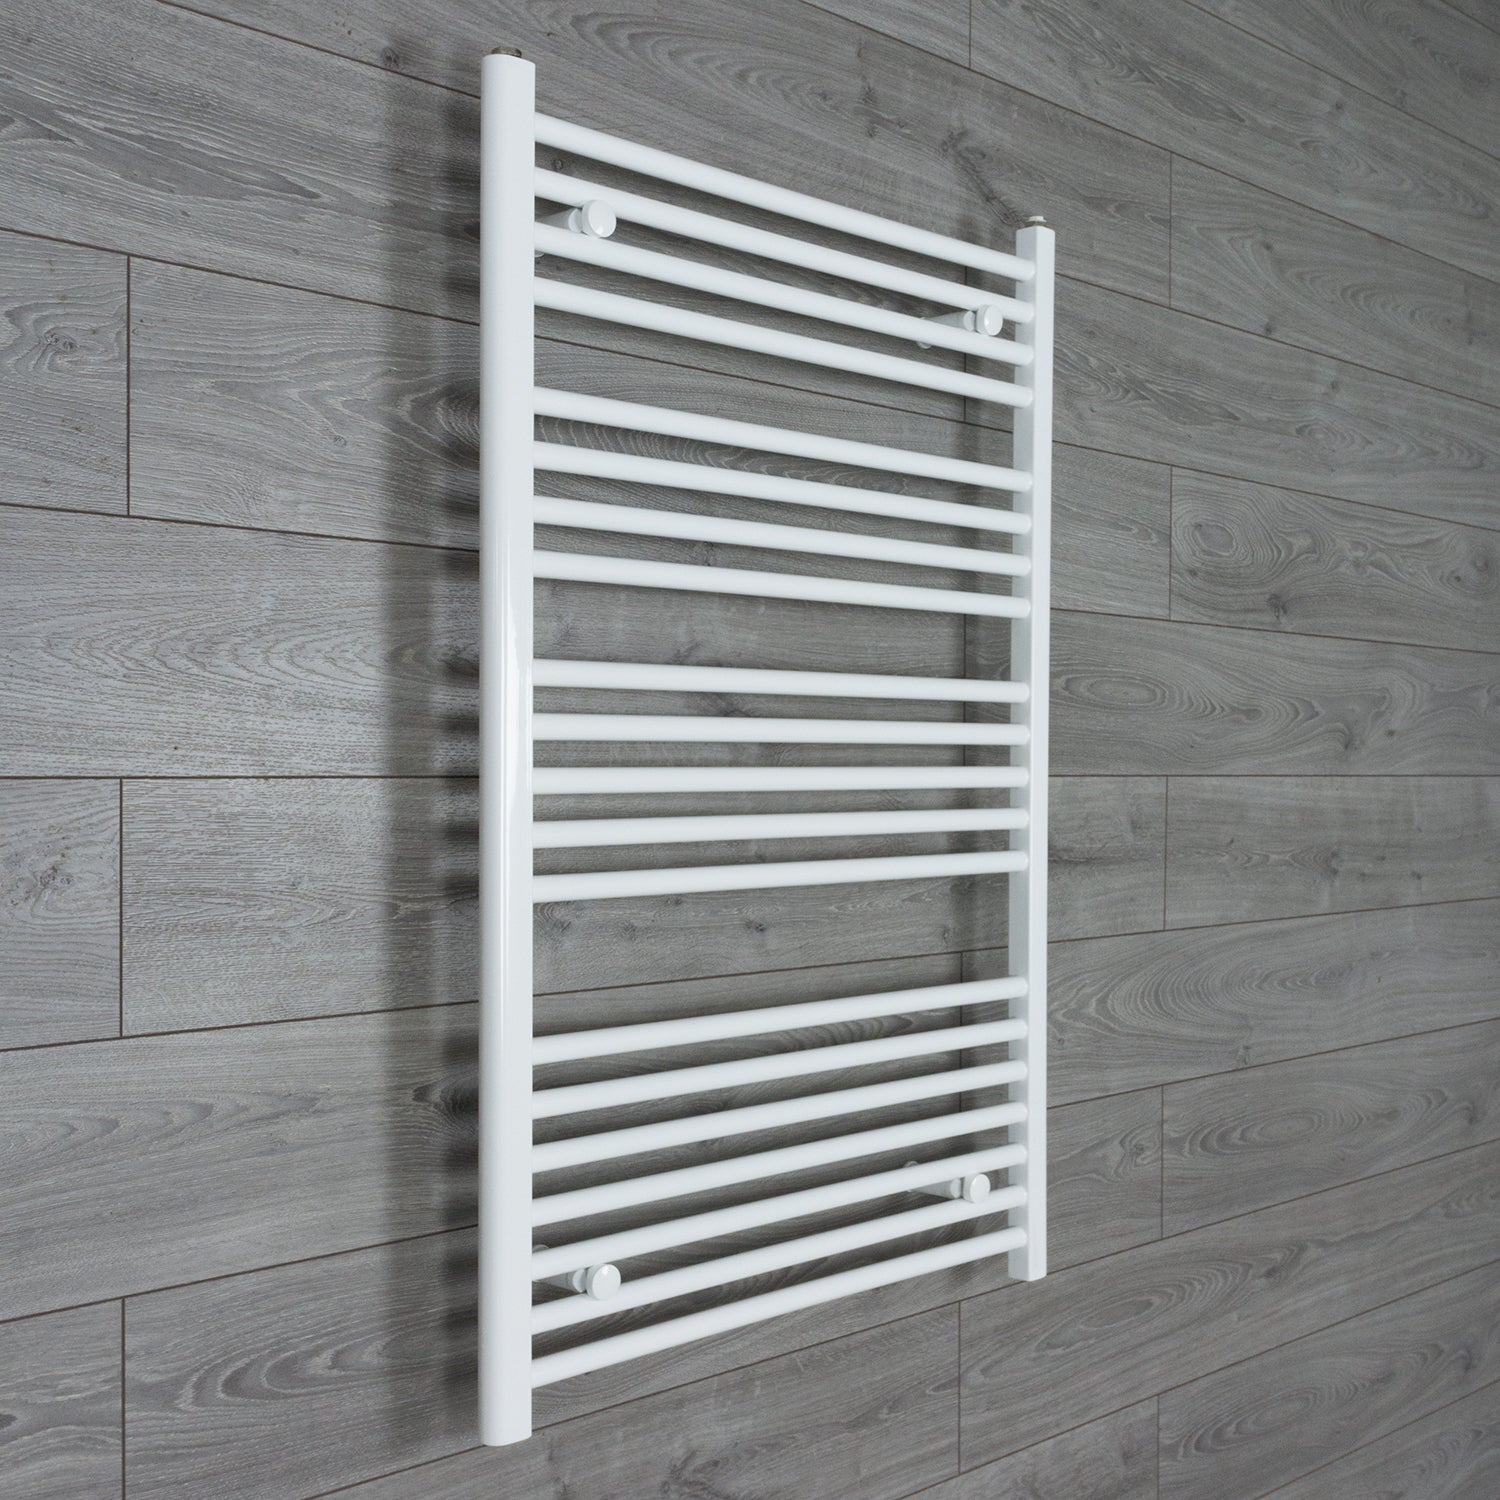 750mm Wide 1100mm High White Towel Rail Radiator